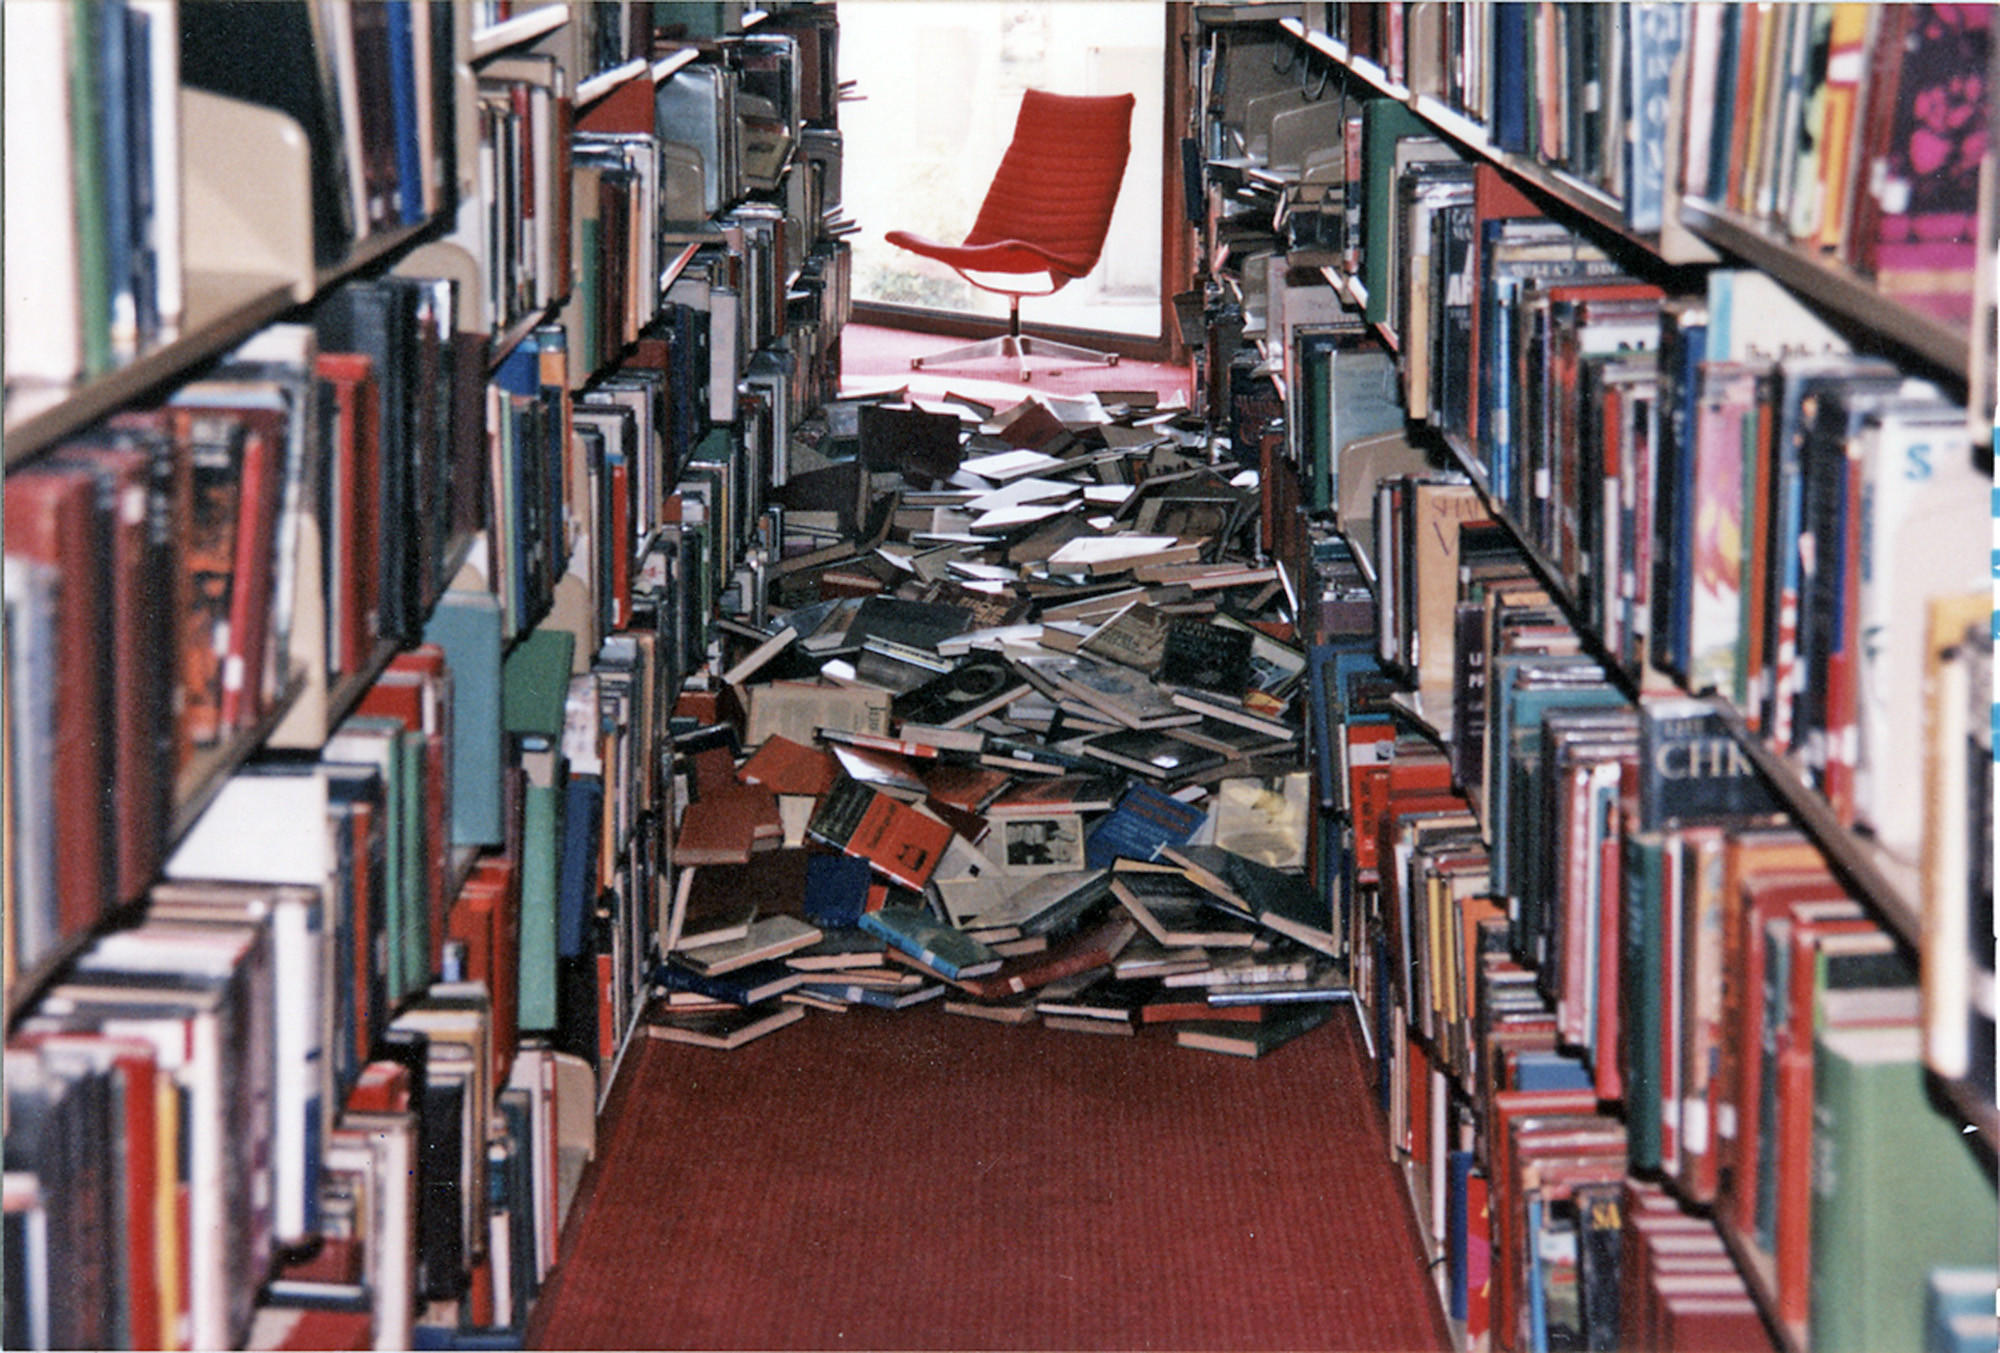 Books knocked off the Glendale Central Library shelves lie of the floor after the 1994 Northridge earthquake.